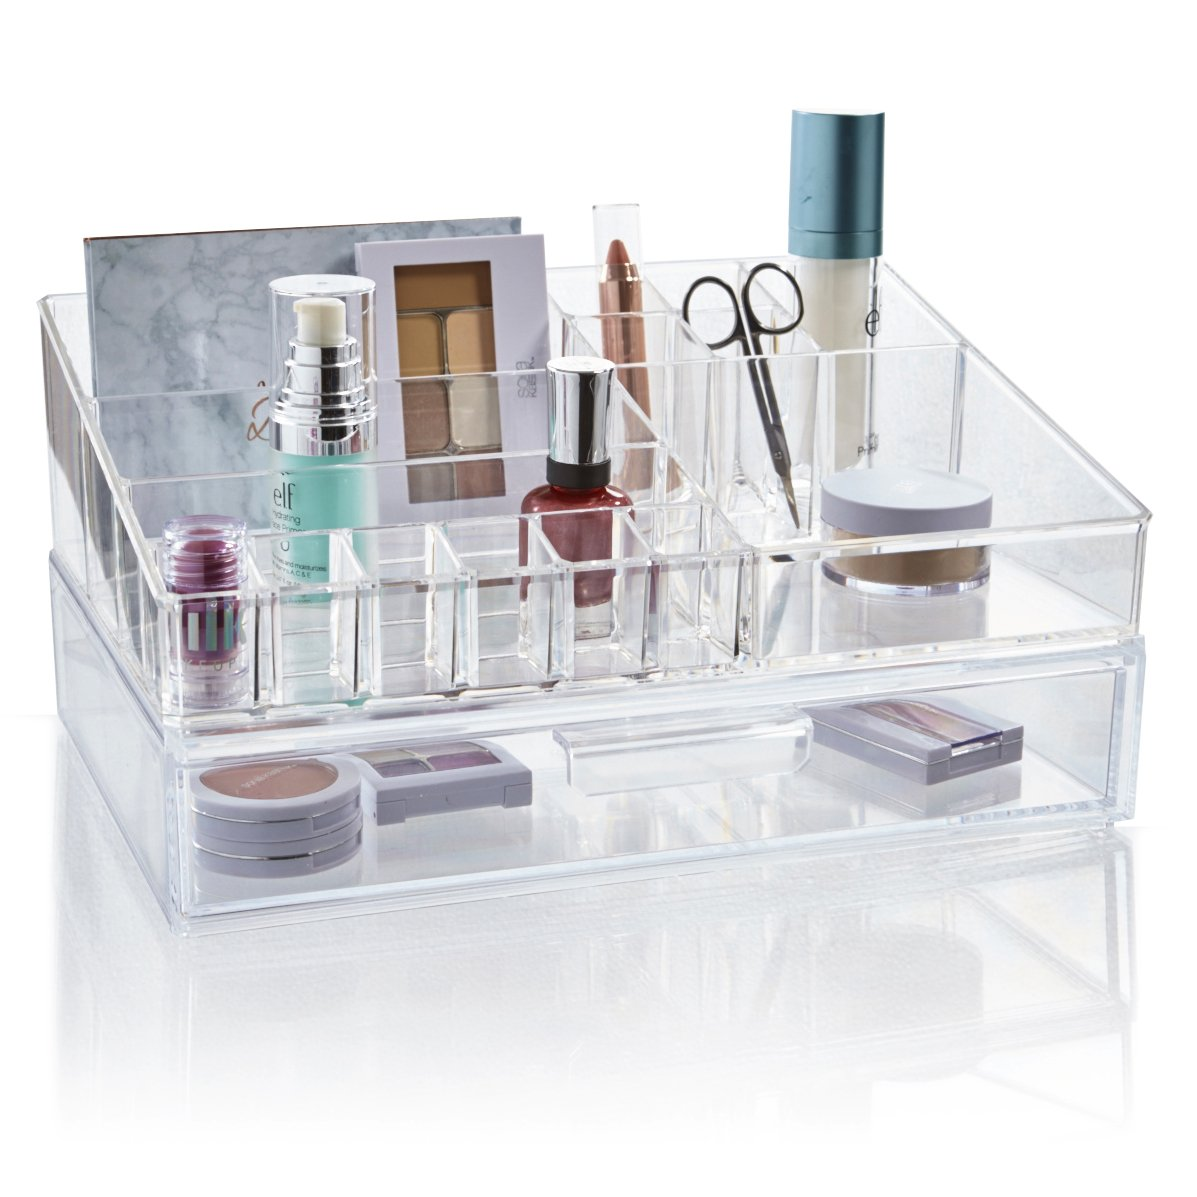 STORi Premium Quality Clear Plastic Cosmetic and Makeup Palette Organizer with 1 Drawer | Audrey Collection